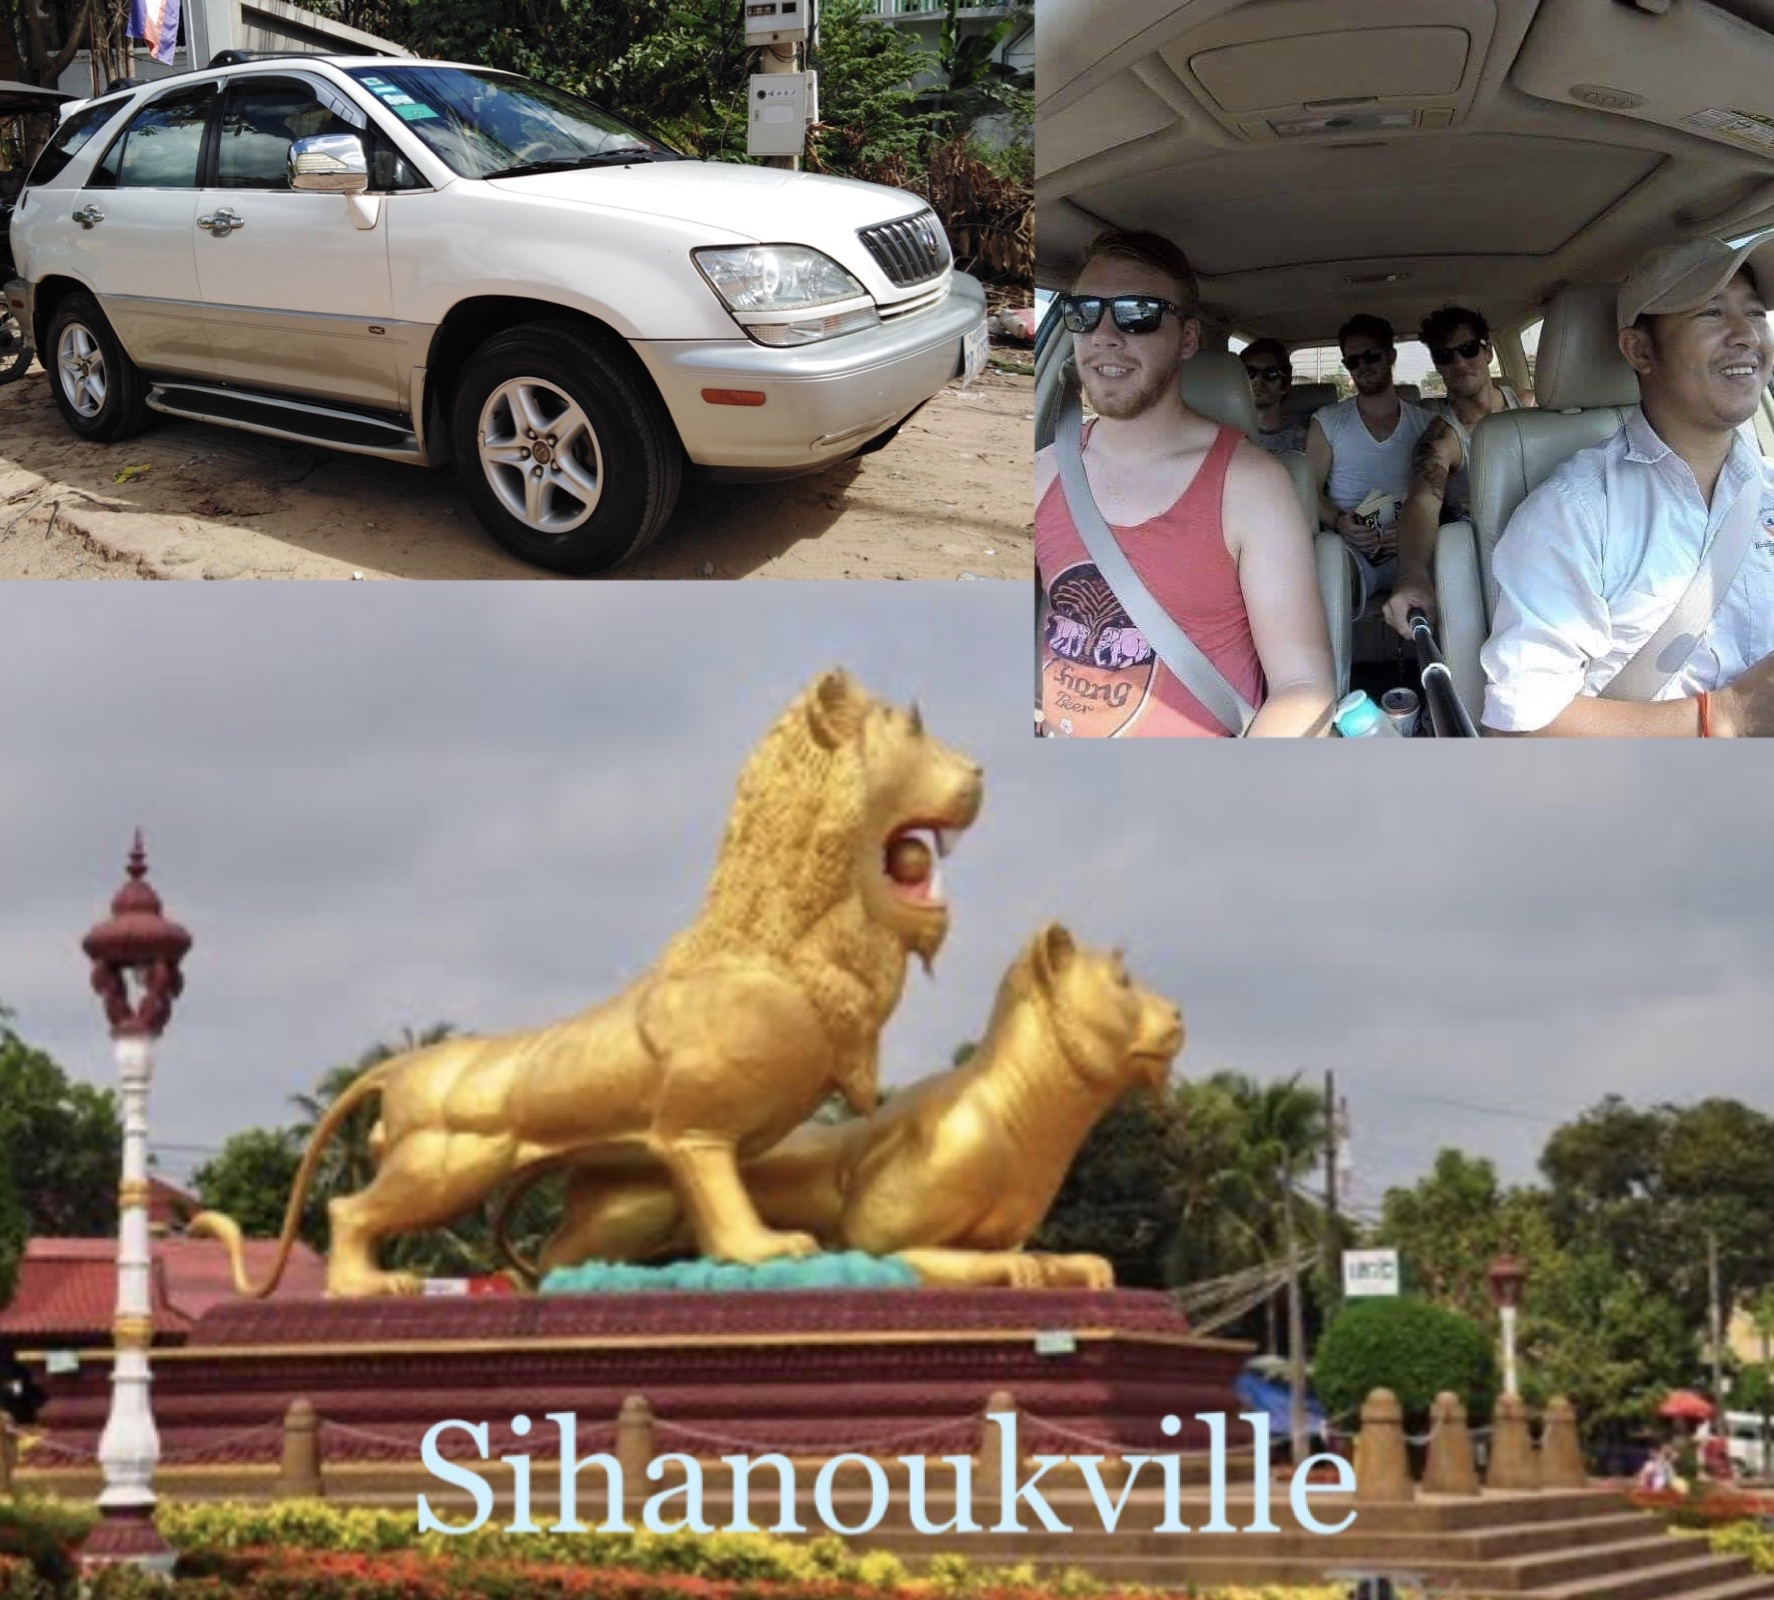 Phnom Penh Taxi Driver, Private Taxi to Sihanoukville, Phnom Penh, Taxi in Cambodia